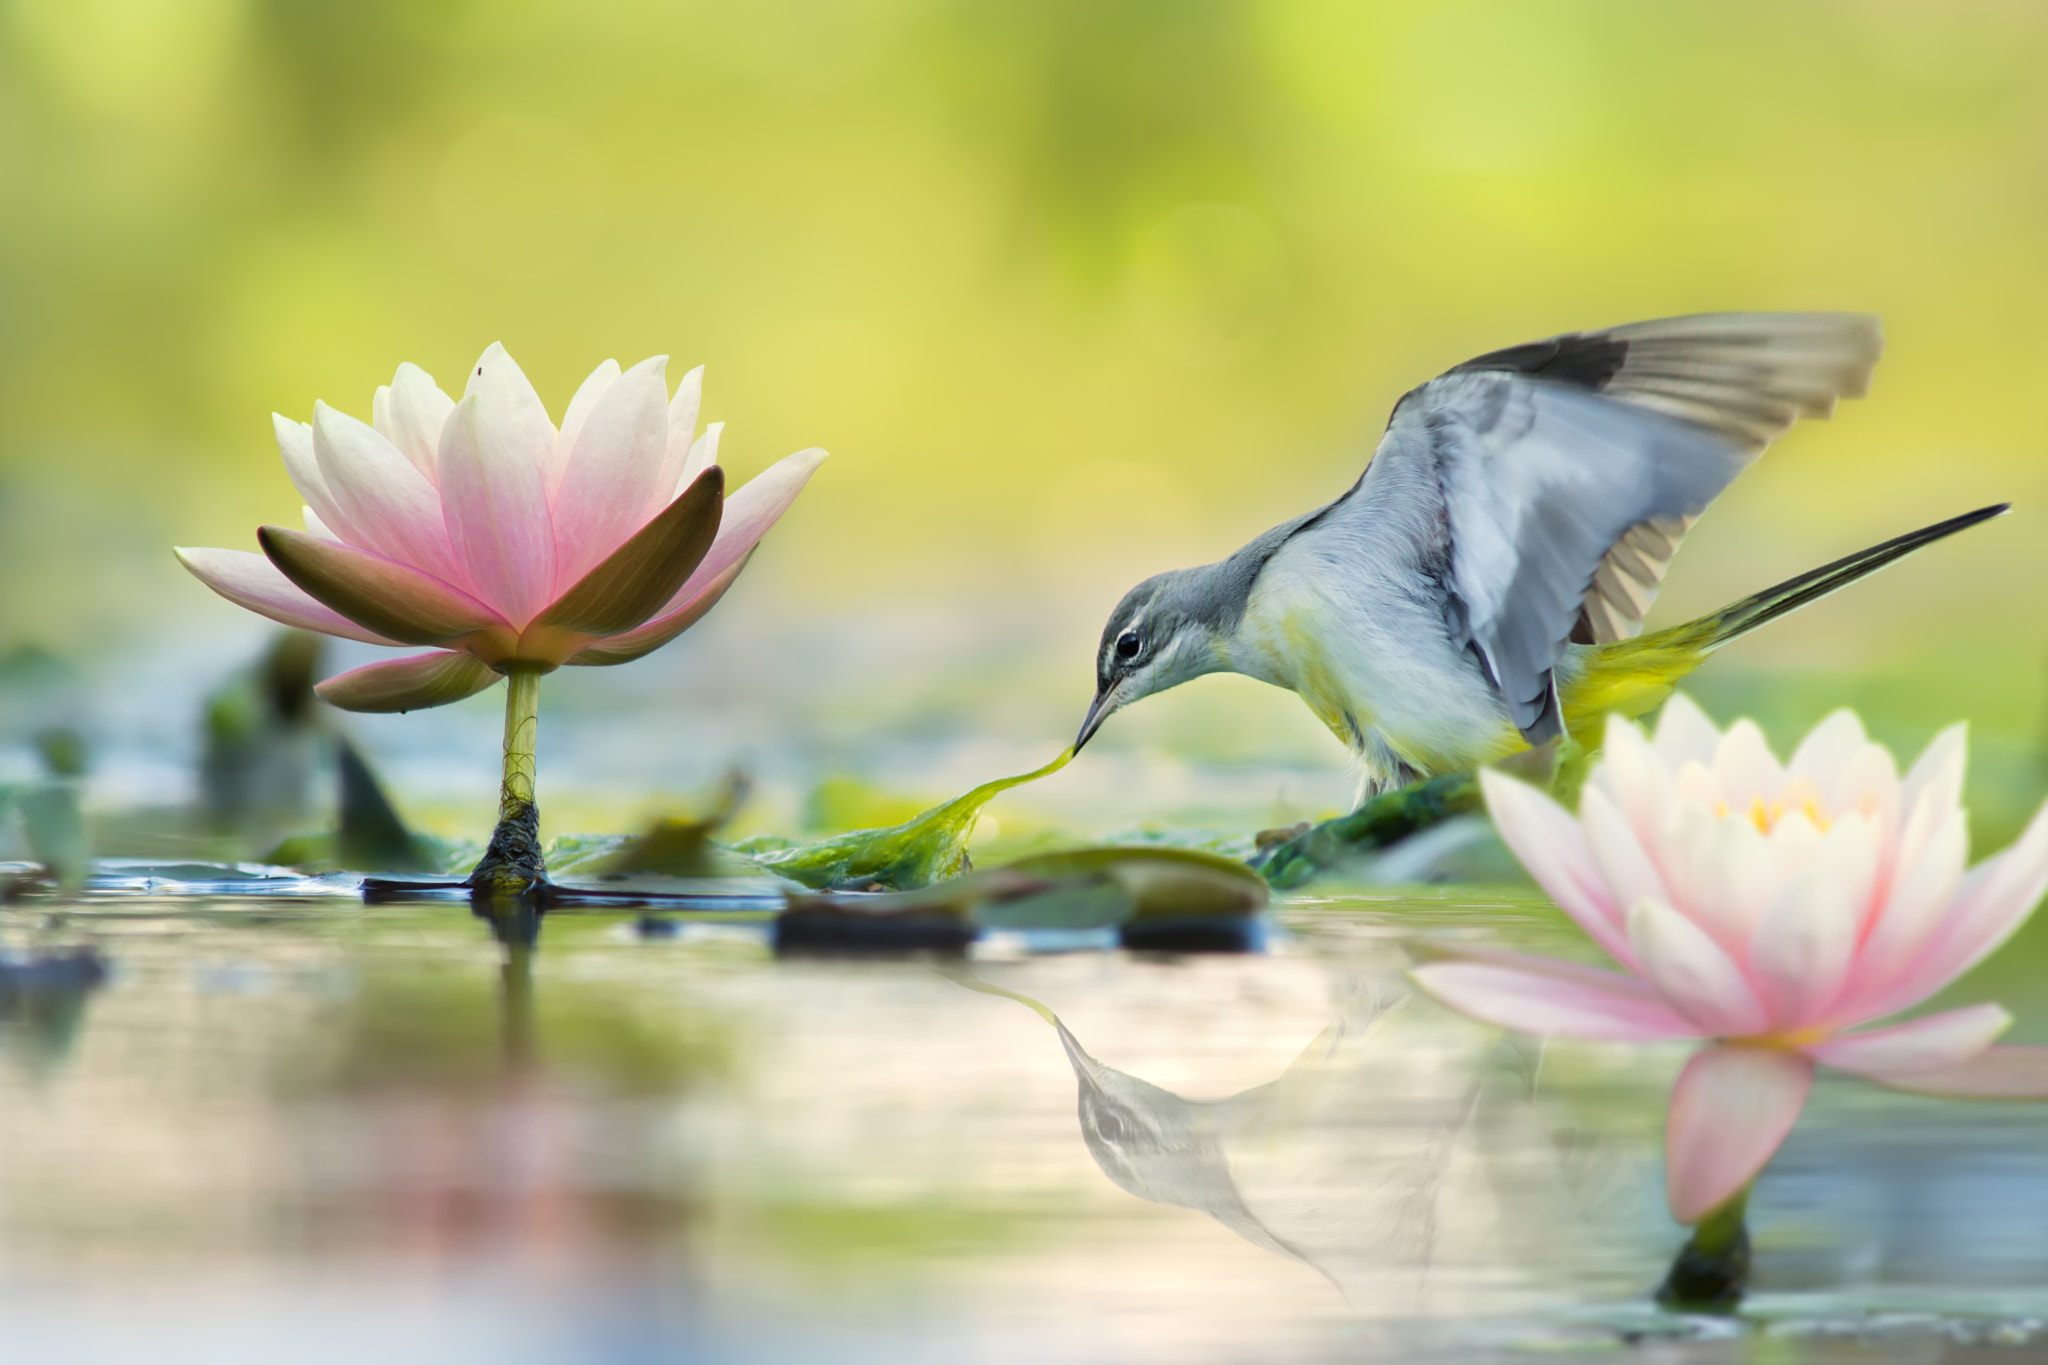 Photograph Gray Wagtail and Lotus 灰鶺鴒和蓮花 by FuYi Chen on 500px